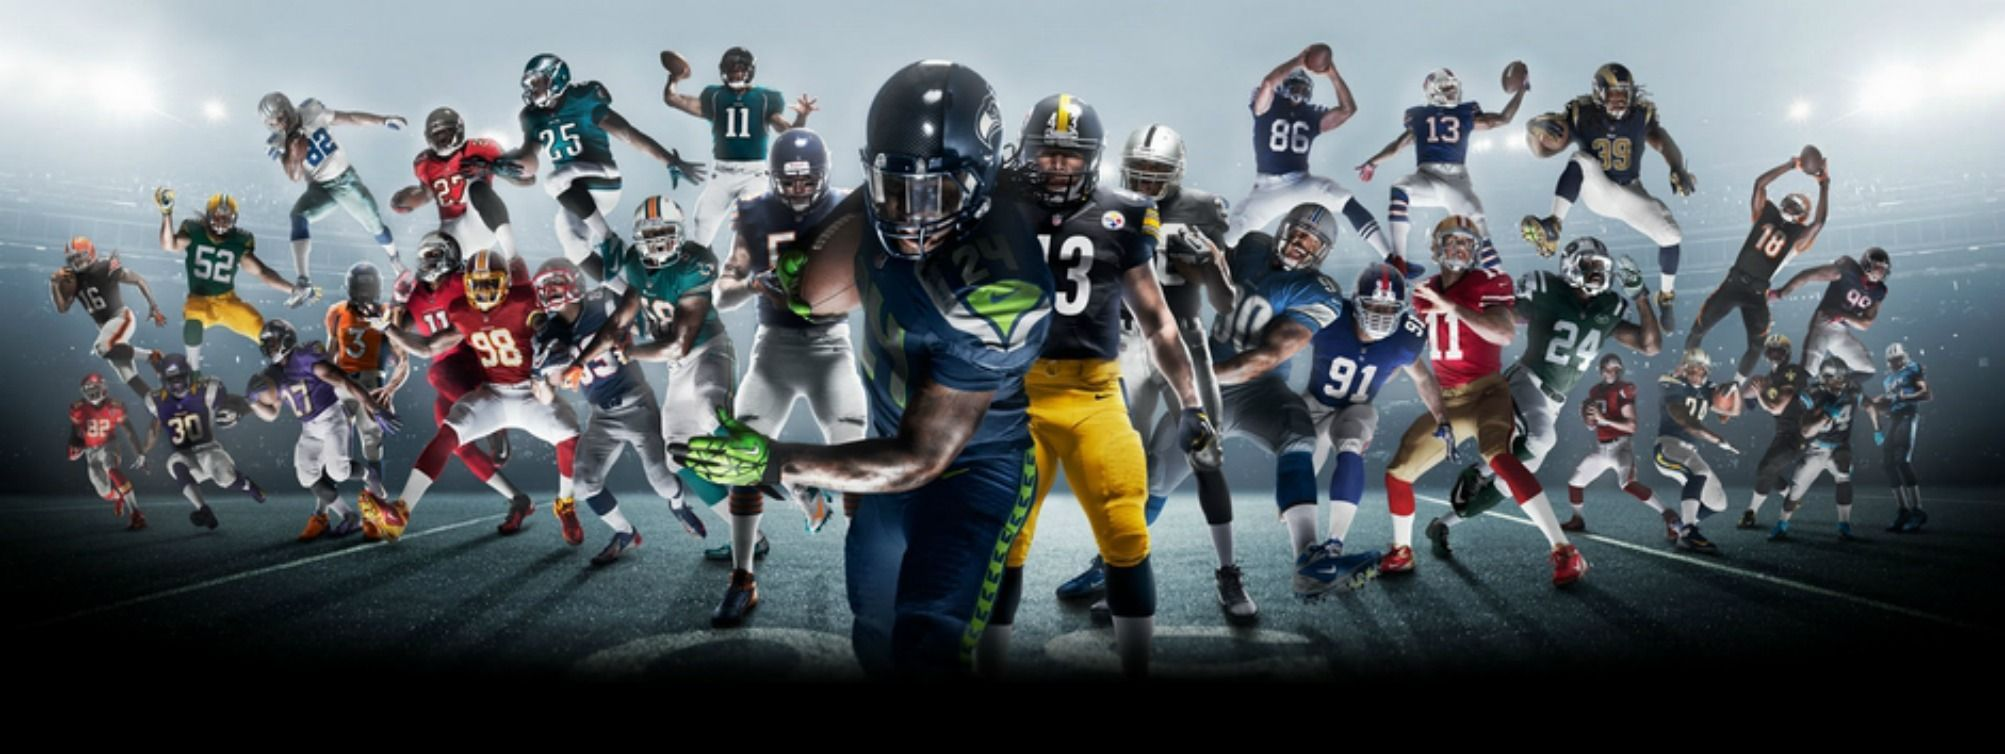 Football Nfl Wallpapers